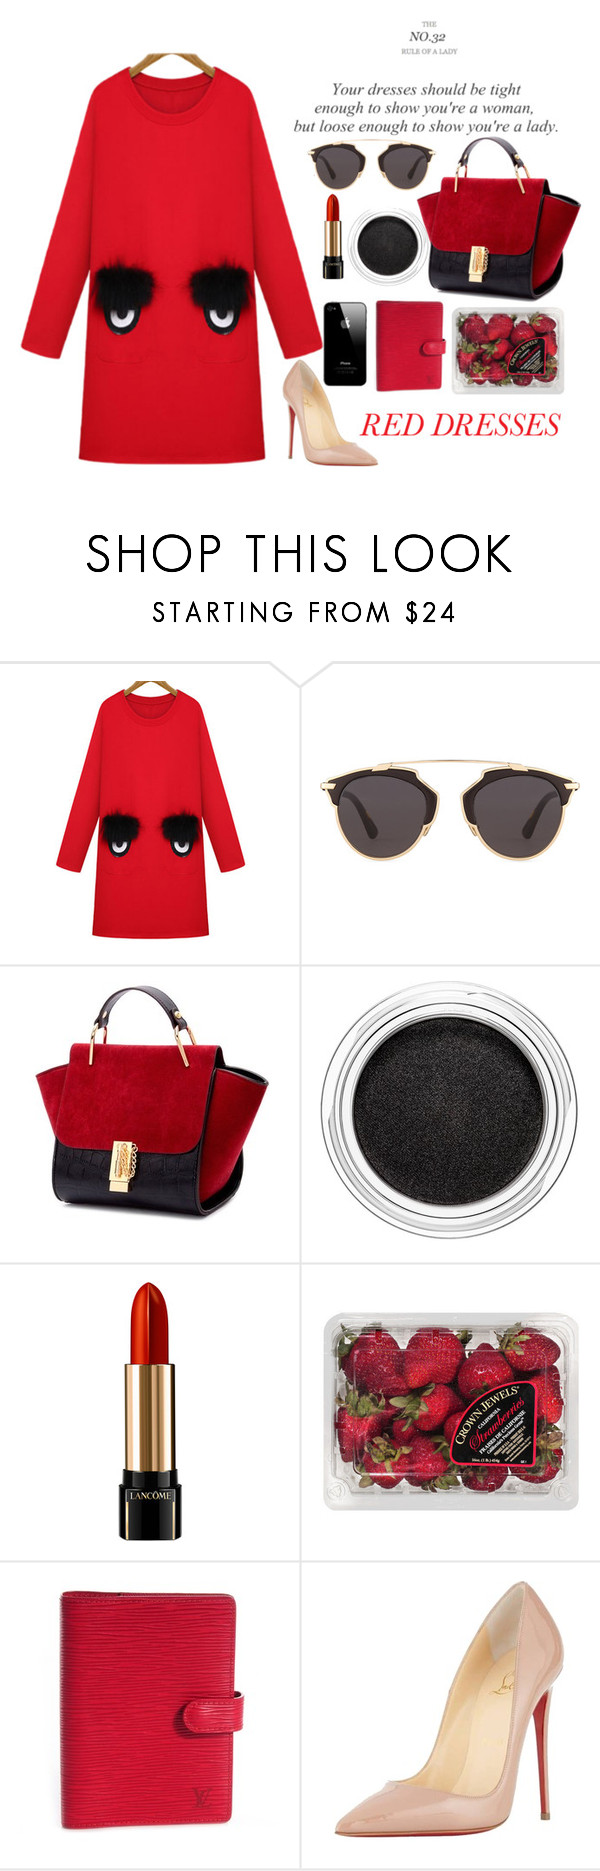 """I see you"" by strange-girl0 ❤ liked on Polyvore featuring WithChic, Christian Dior, Clarins, Lancôme, FRUIT, Louis Vuitton, Christian Louboutin and reddress"